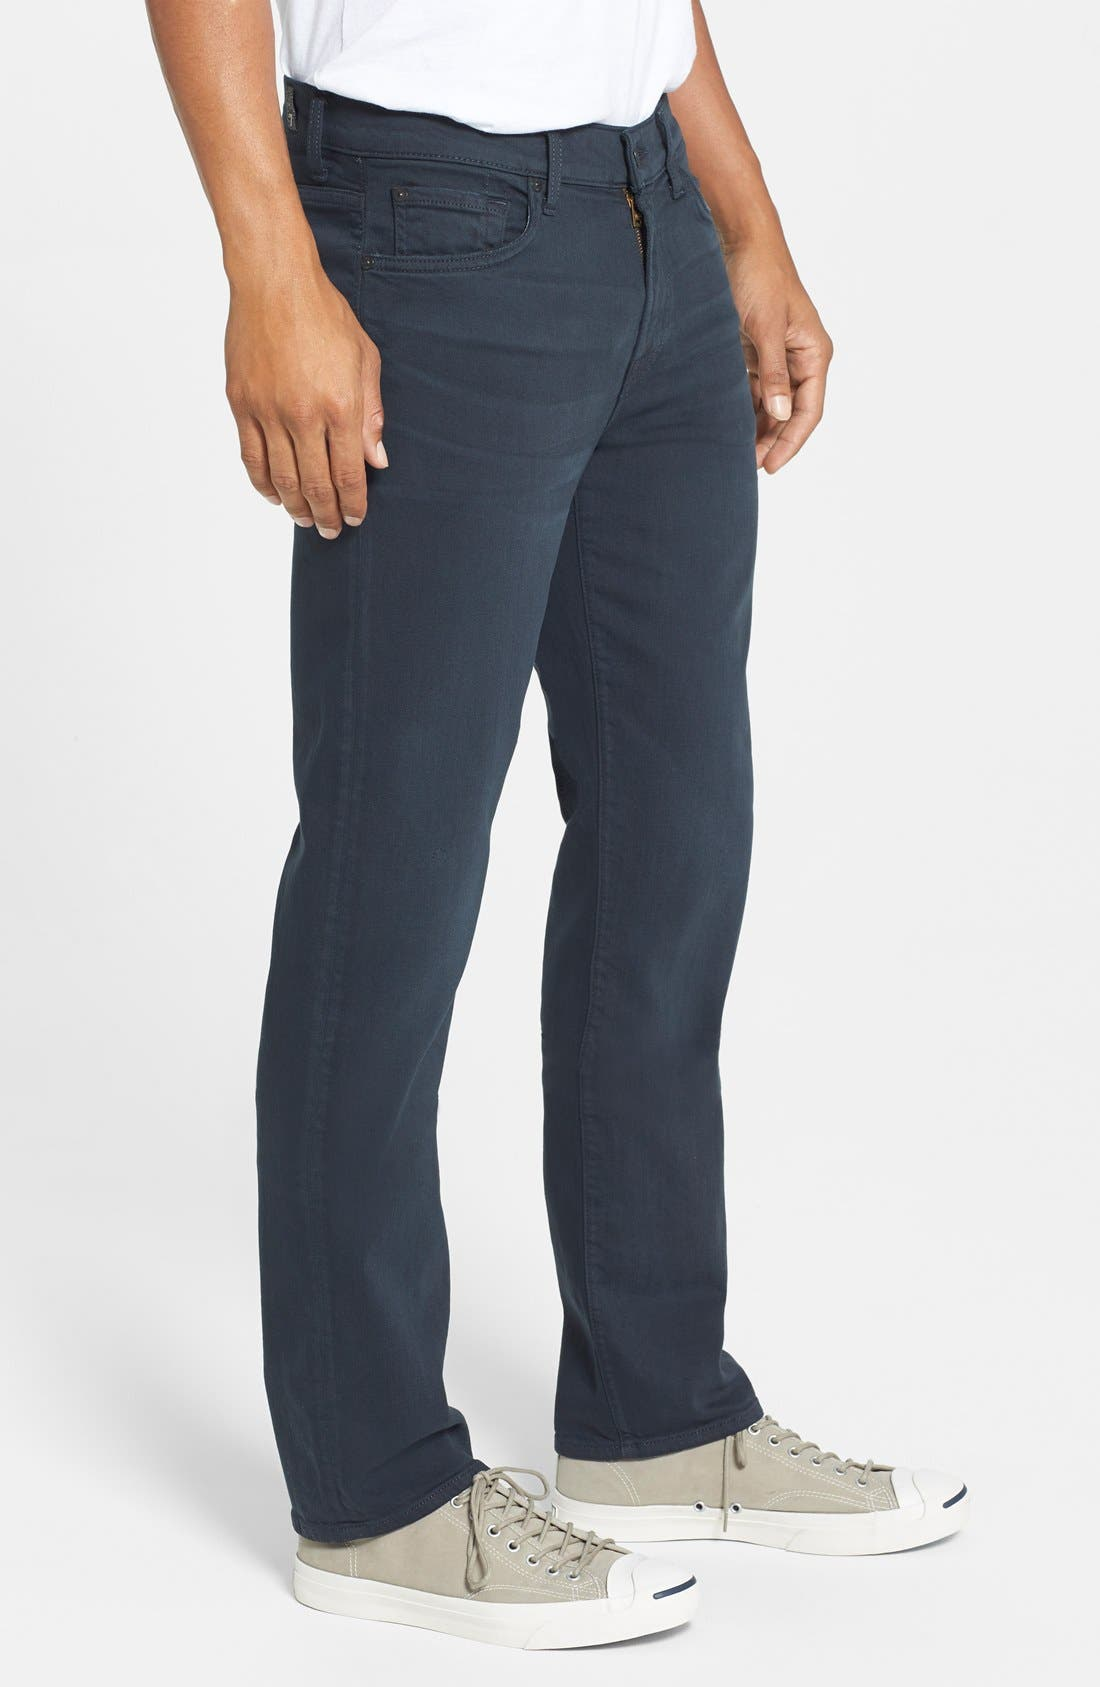 'Slimmy - Luxe Performance' Slim Fit Jeans,                             Alternate thumbnail 53, color,